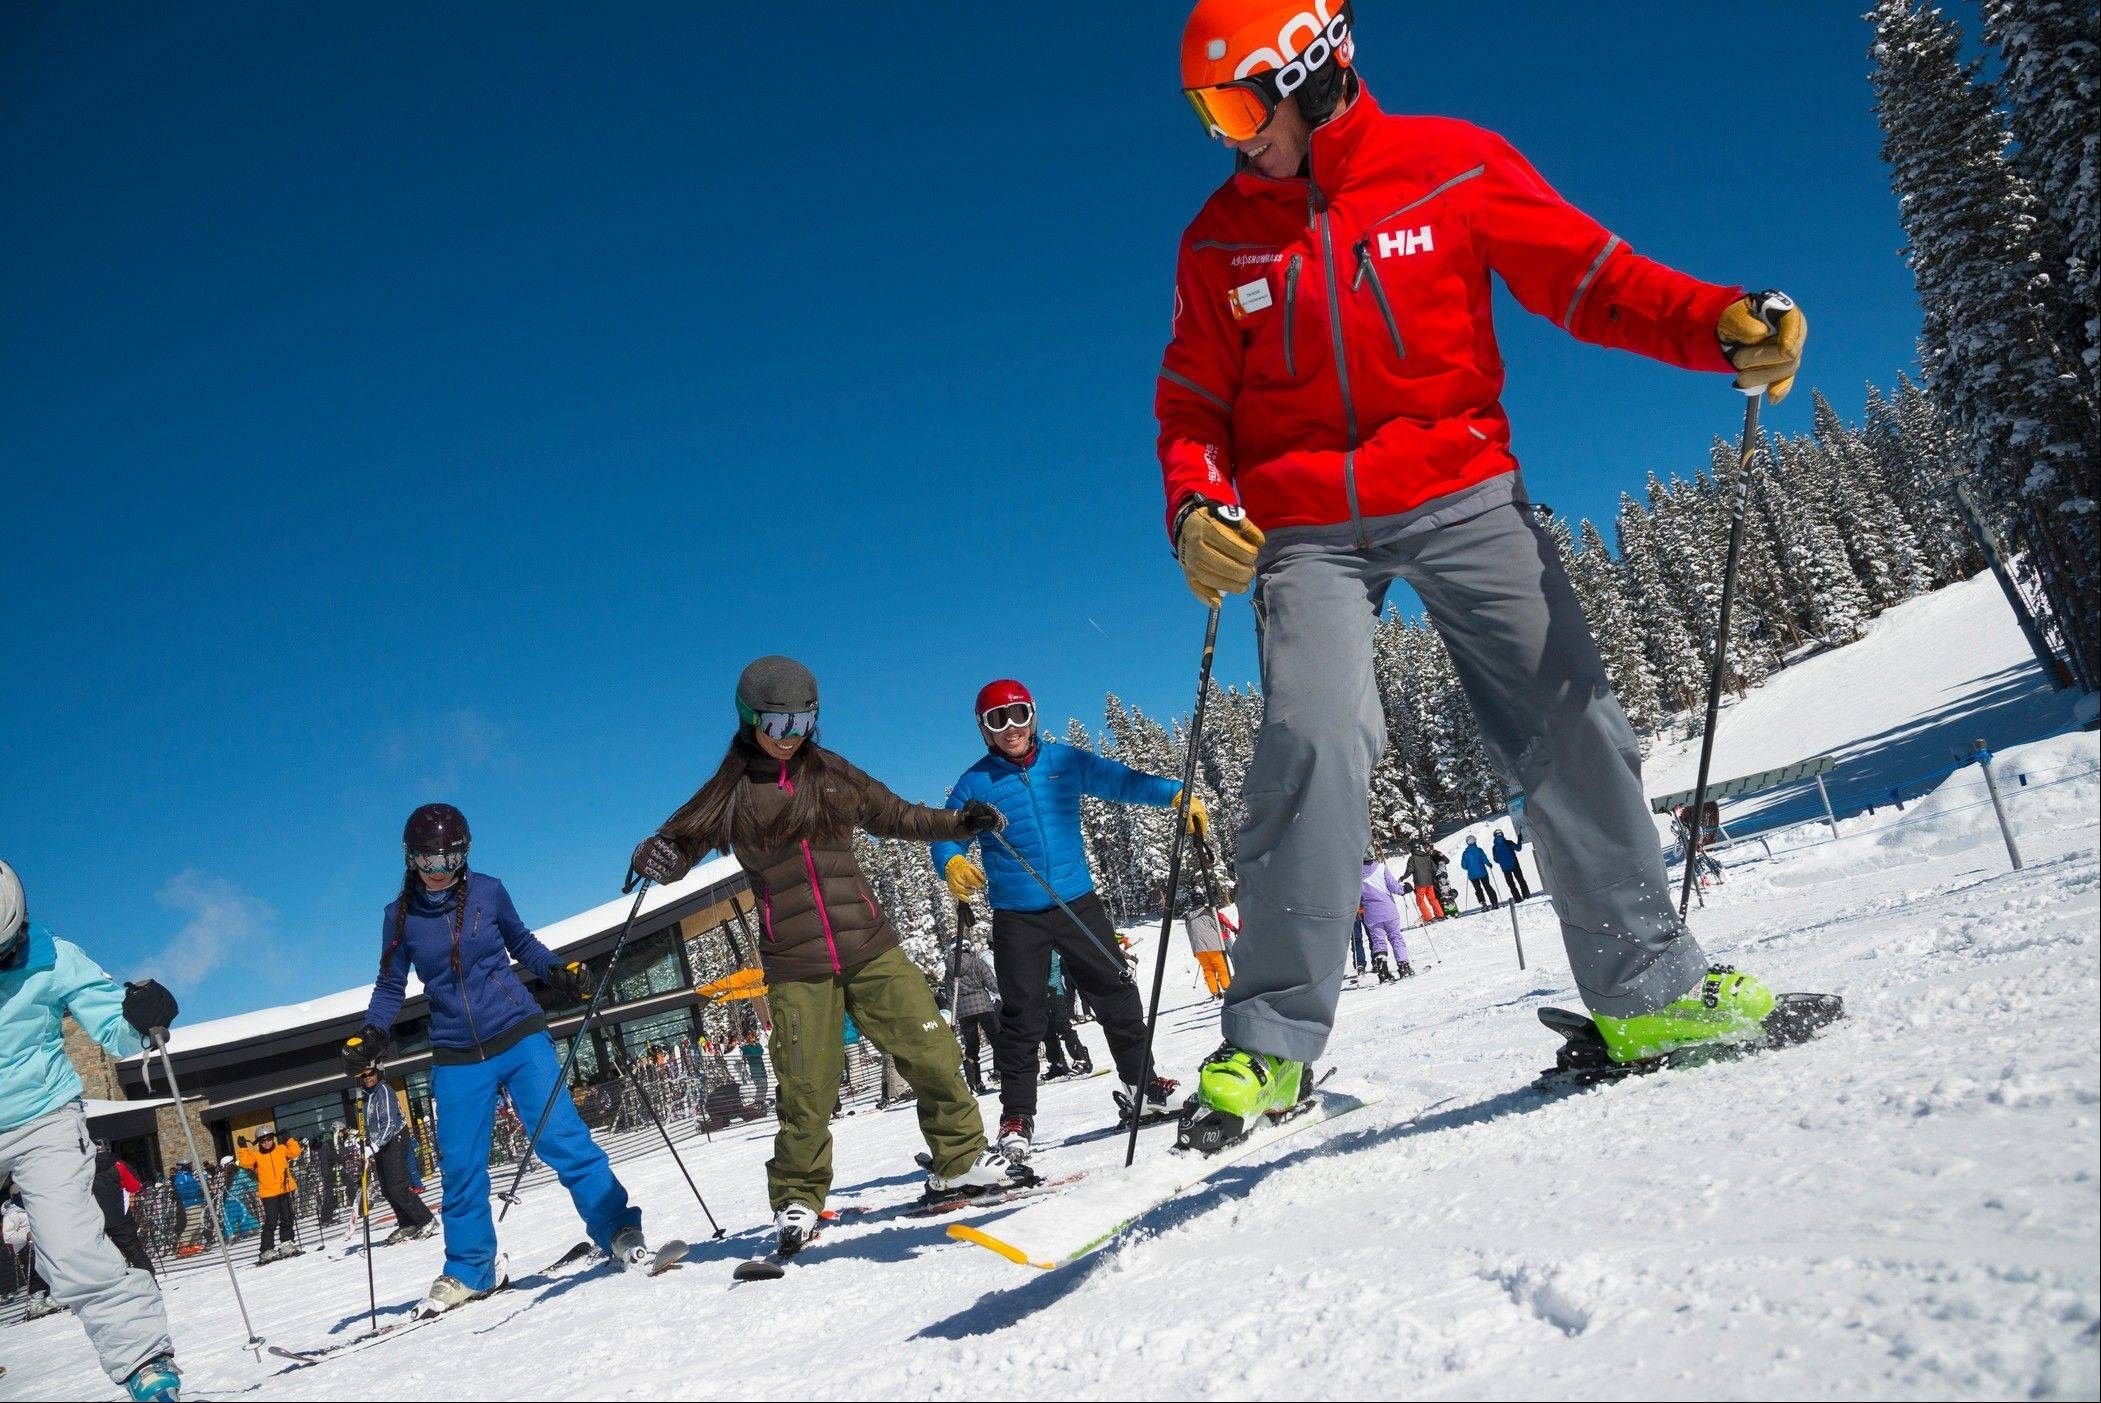 Beginners take a group class at Elk Camp ski school at Snowmass in Aspen, Colo. Planning a ski vacation for couples can be tricky if one person is an expert and the other a novice. Making plans to ski separately with time for lessons, as well as some together time on intermediate slopes, can make the vacation work smoothly.